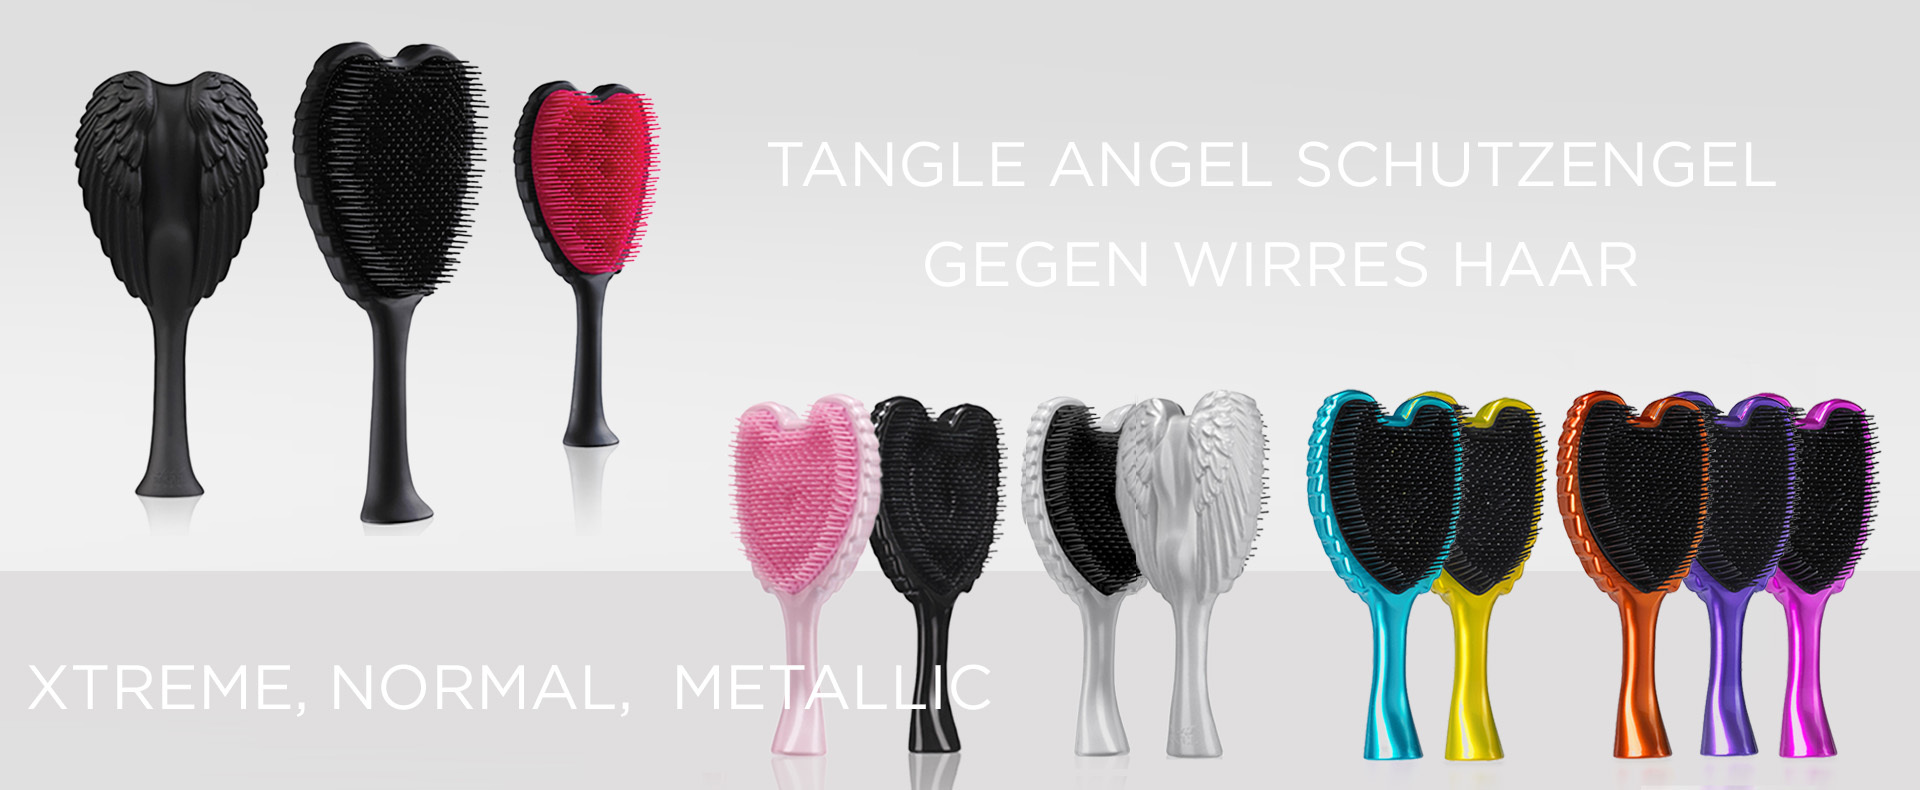 Tangle Angel der Engel für wirres Haar (© Great Lengths)